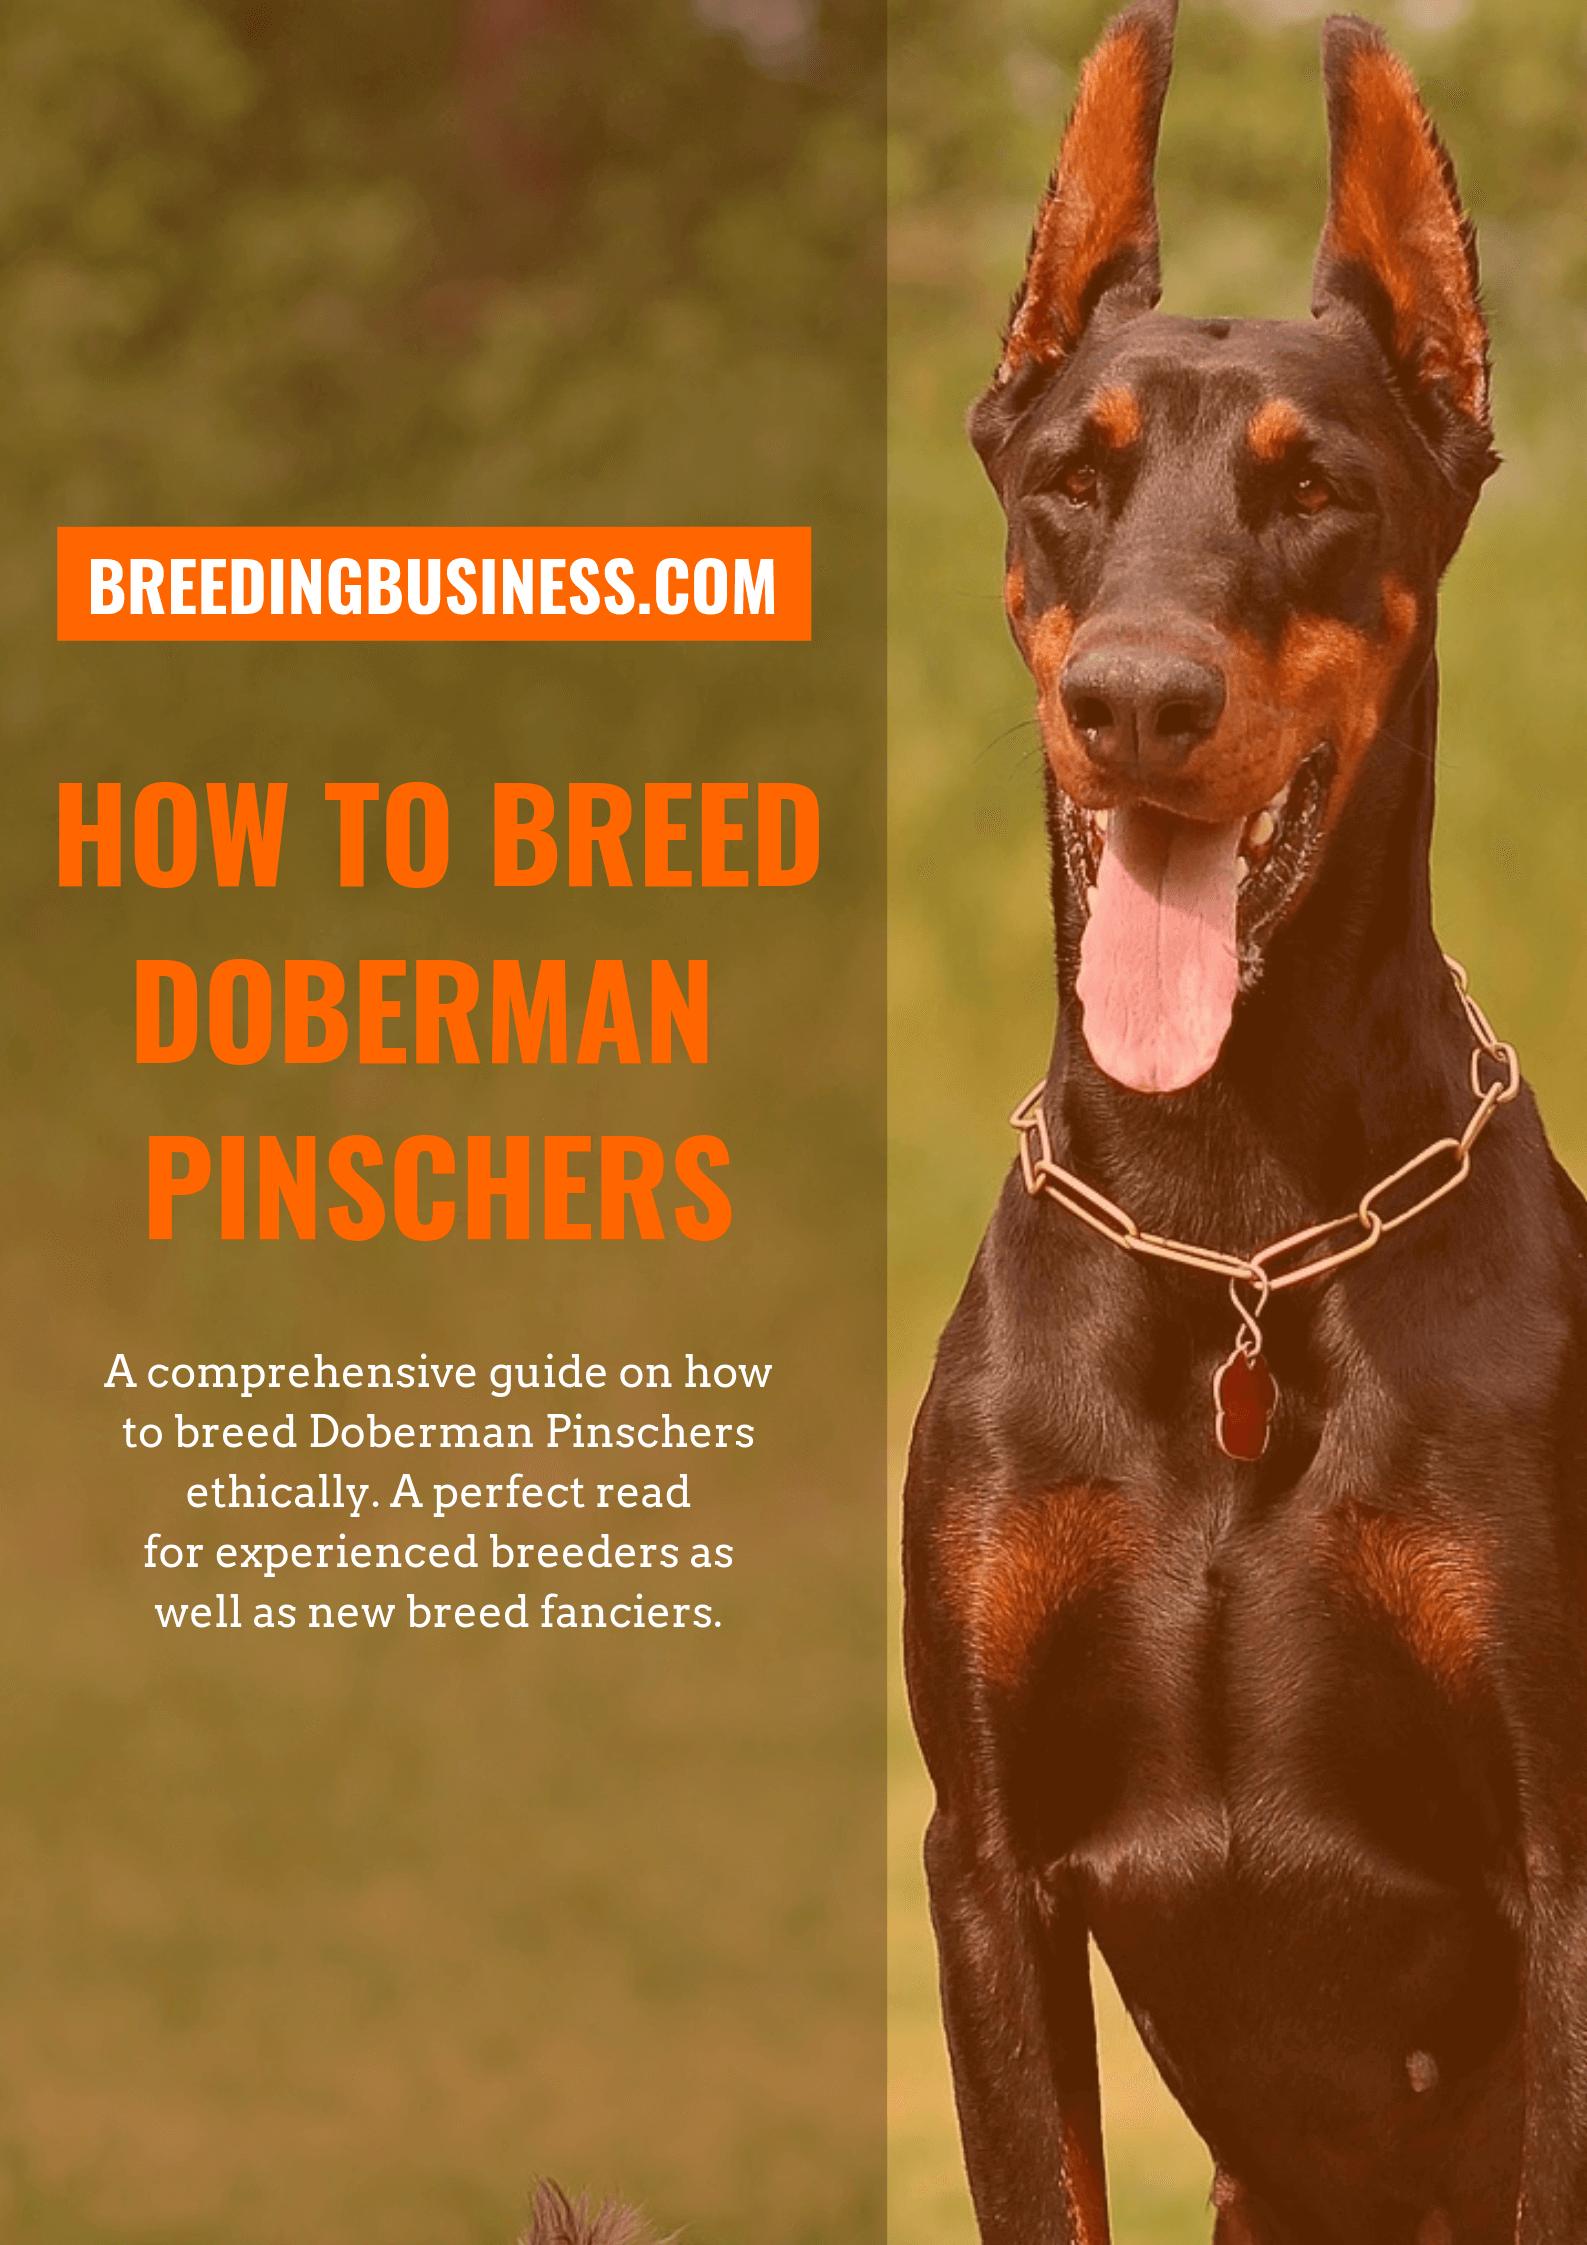 breeding Dobermans